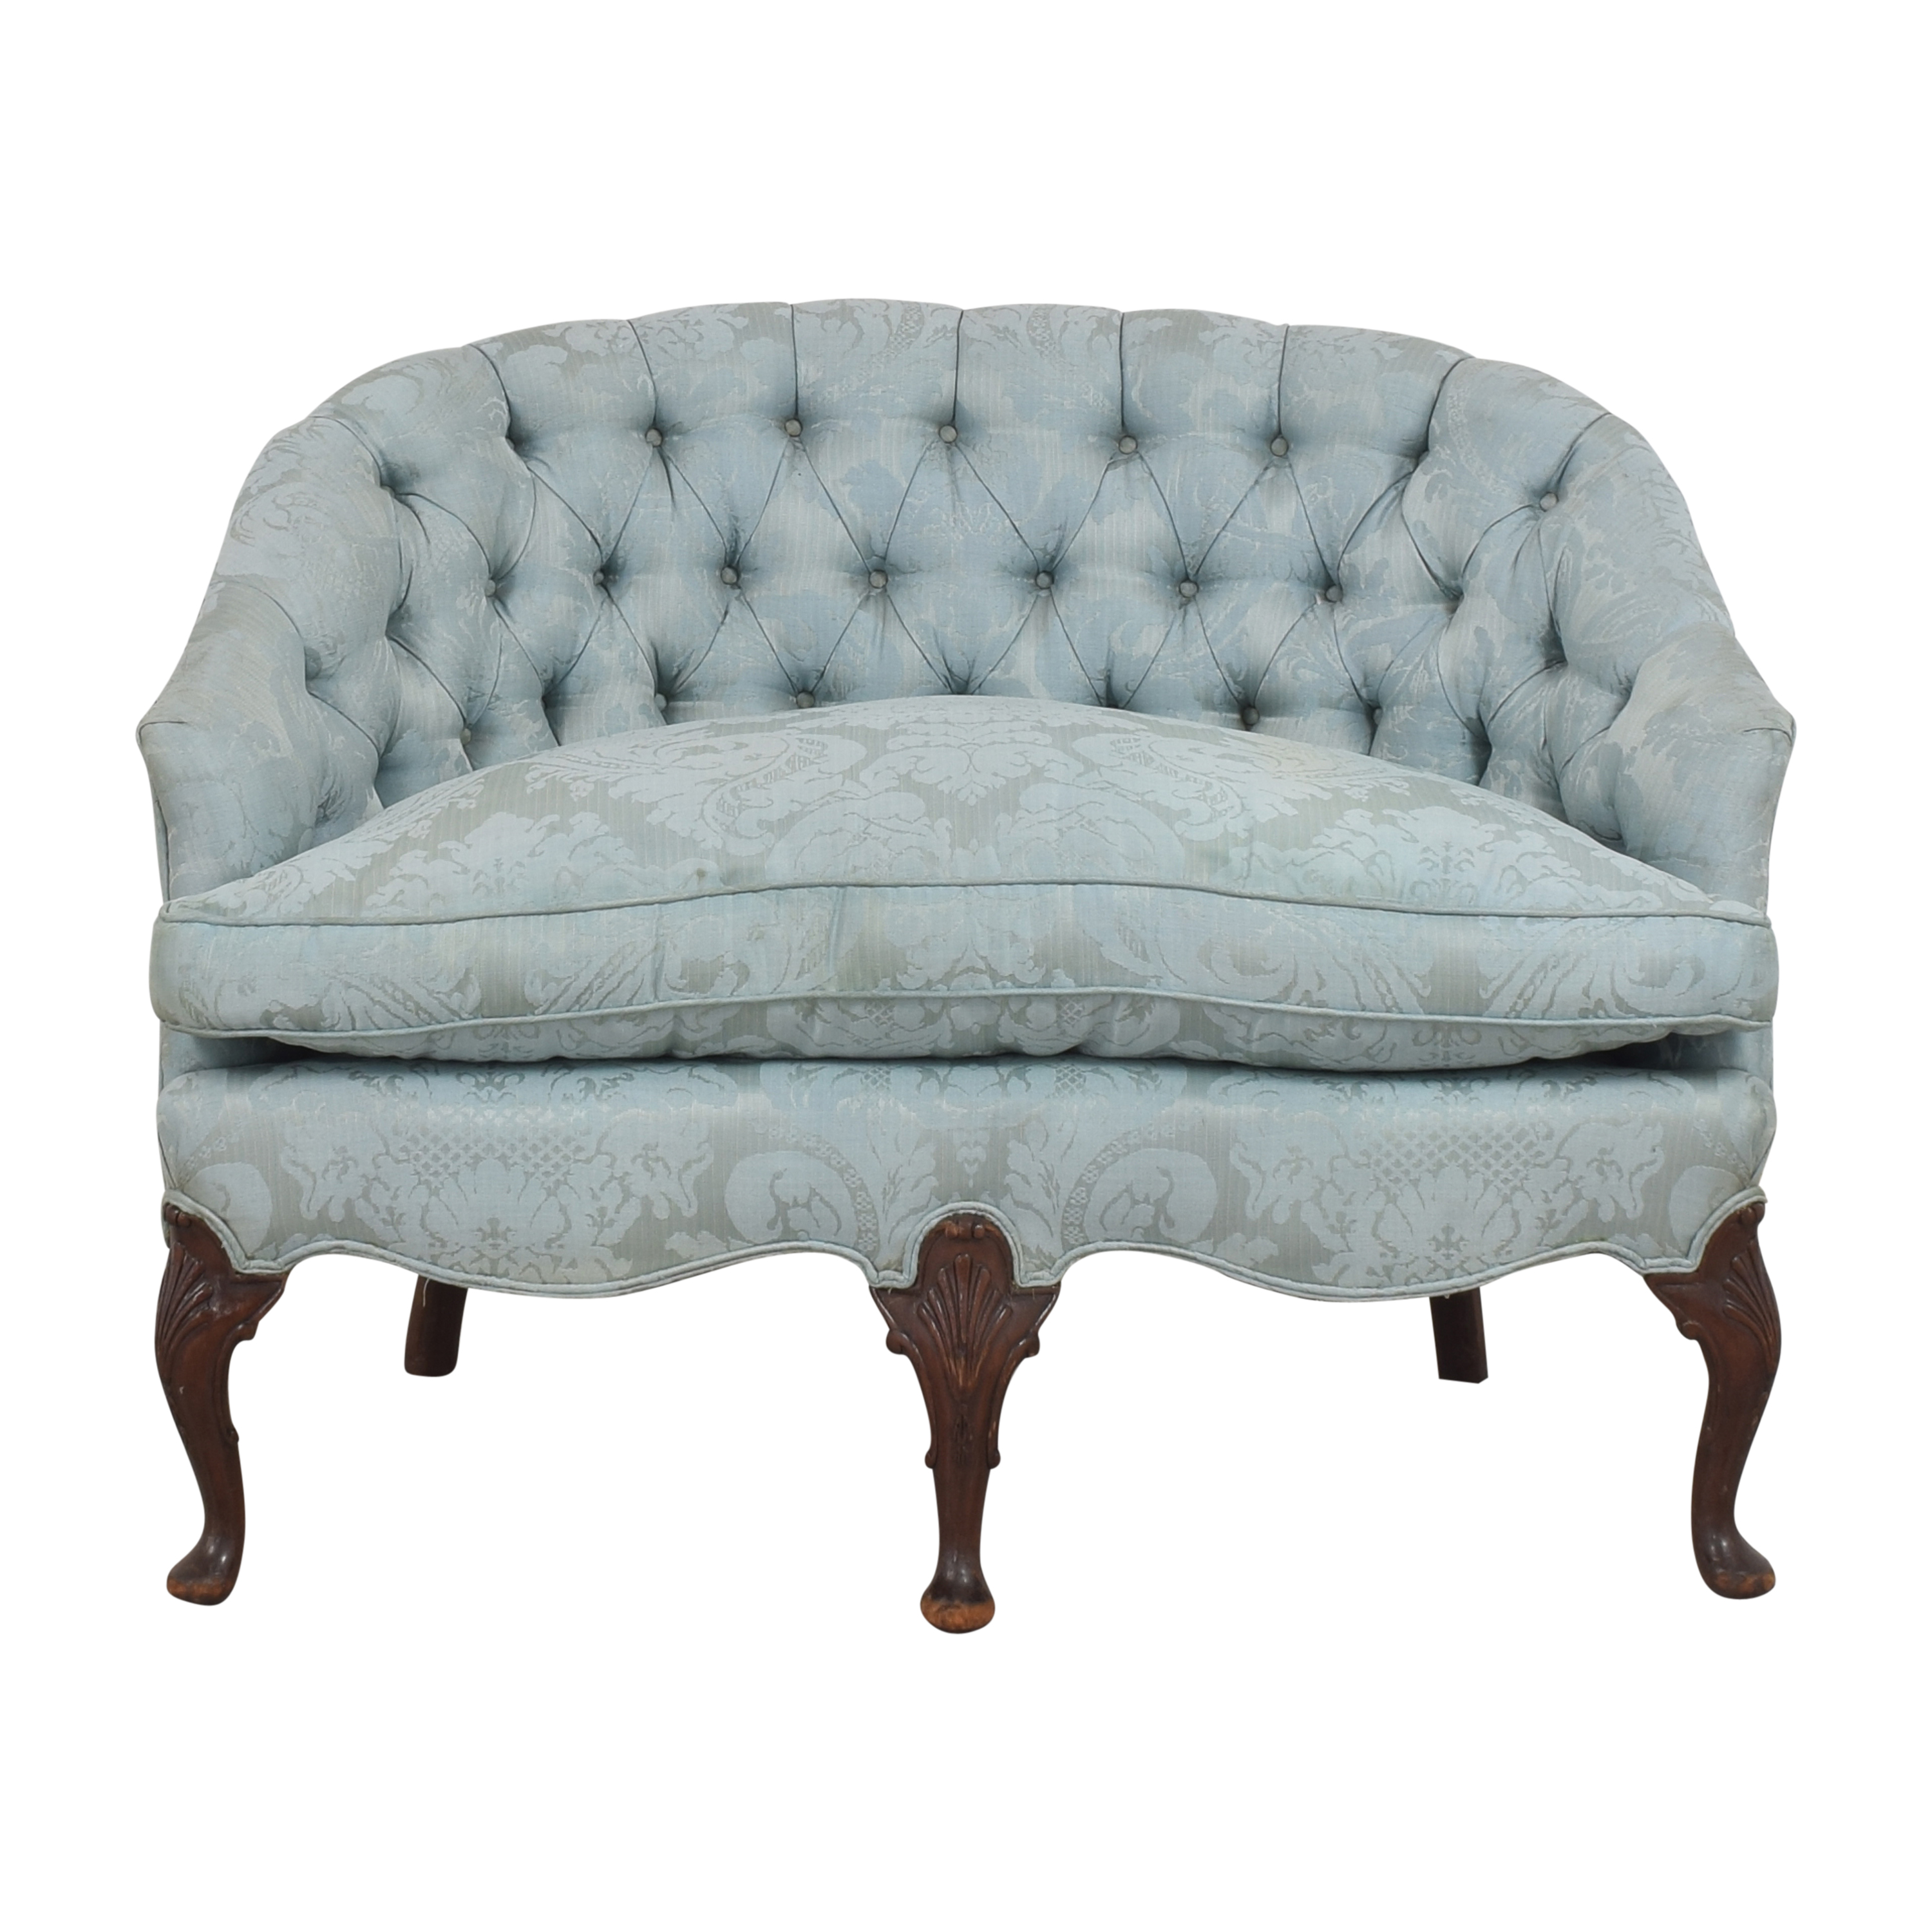 Damask Tufted Settee dimensions